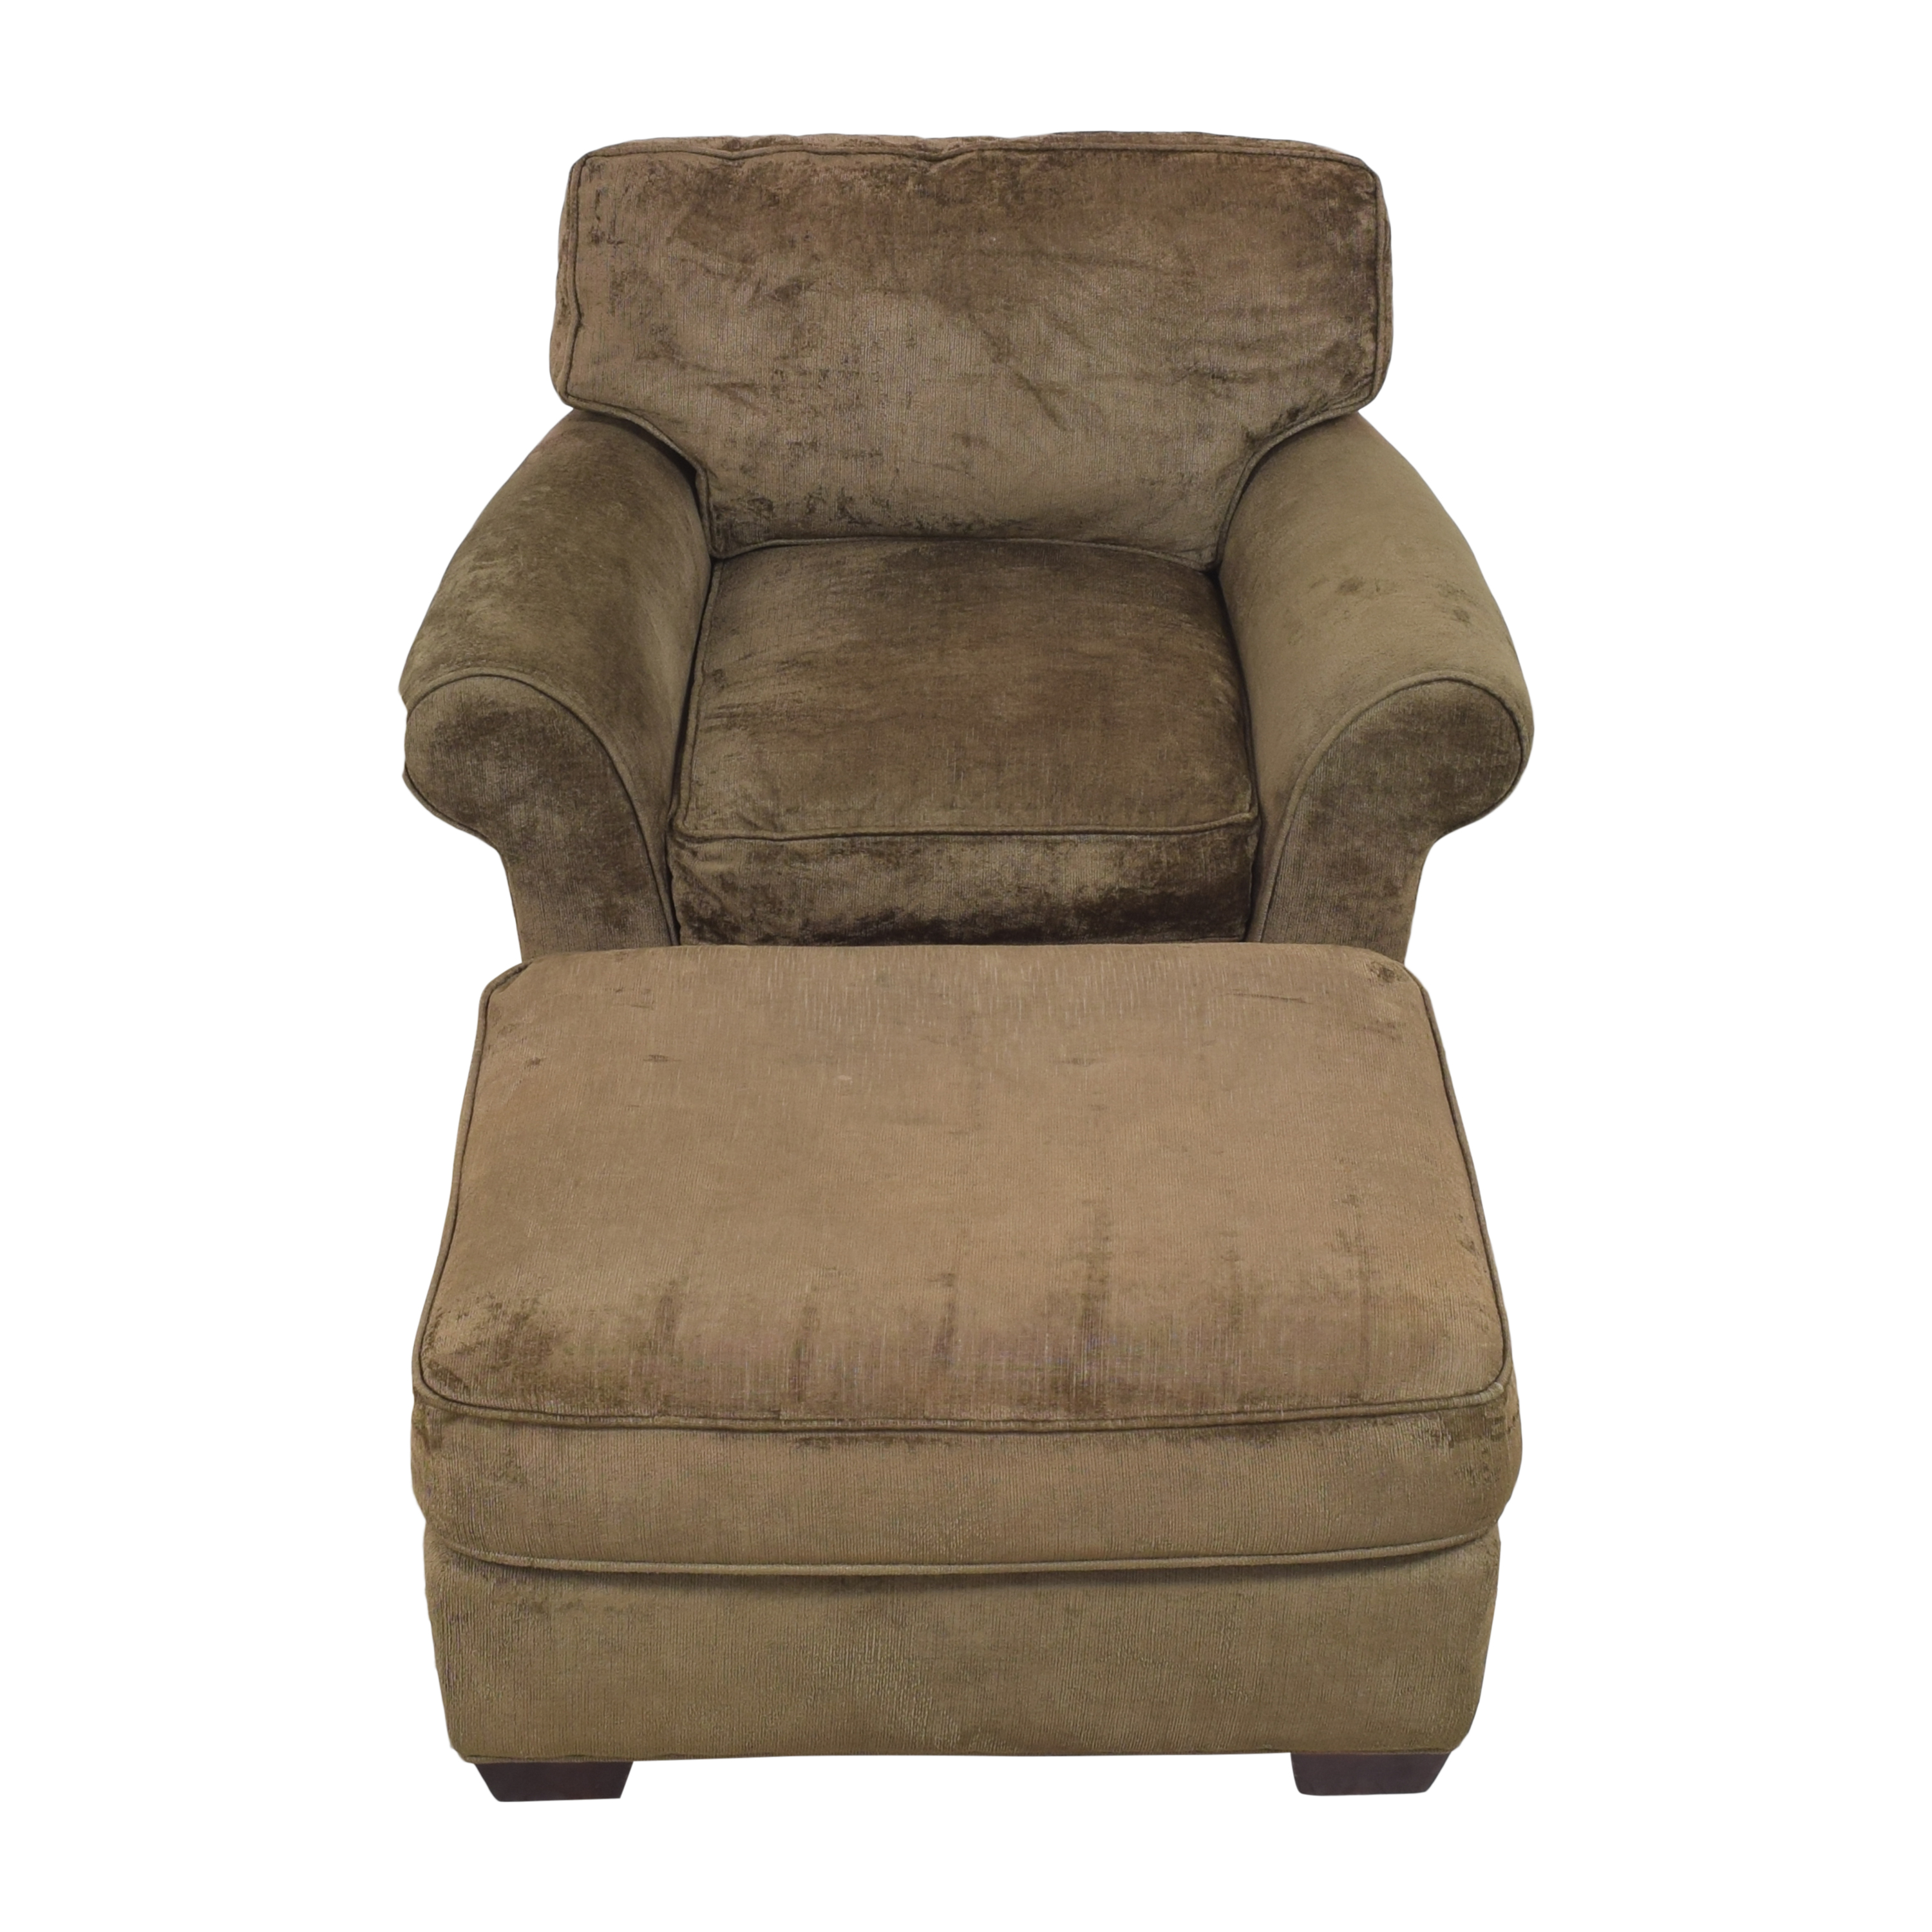 Crate & Barrel Crate & Barrel Arm Chair with Ottoman